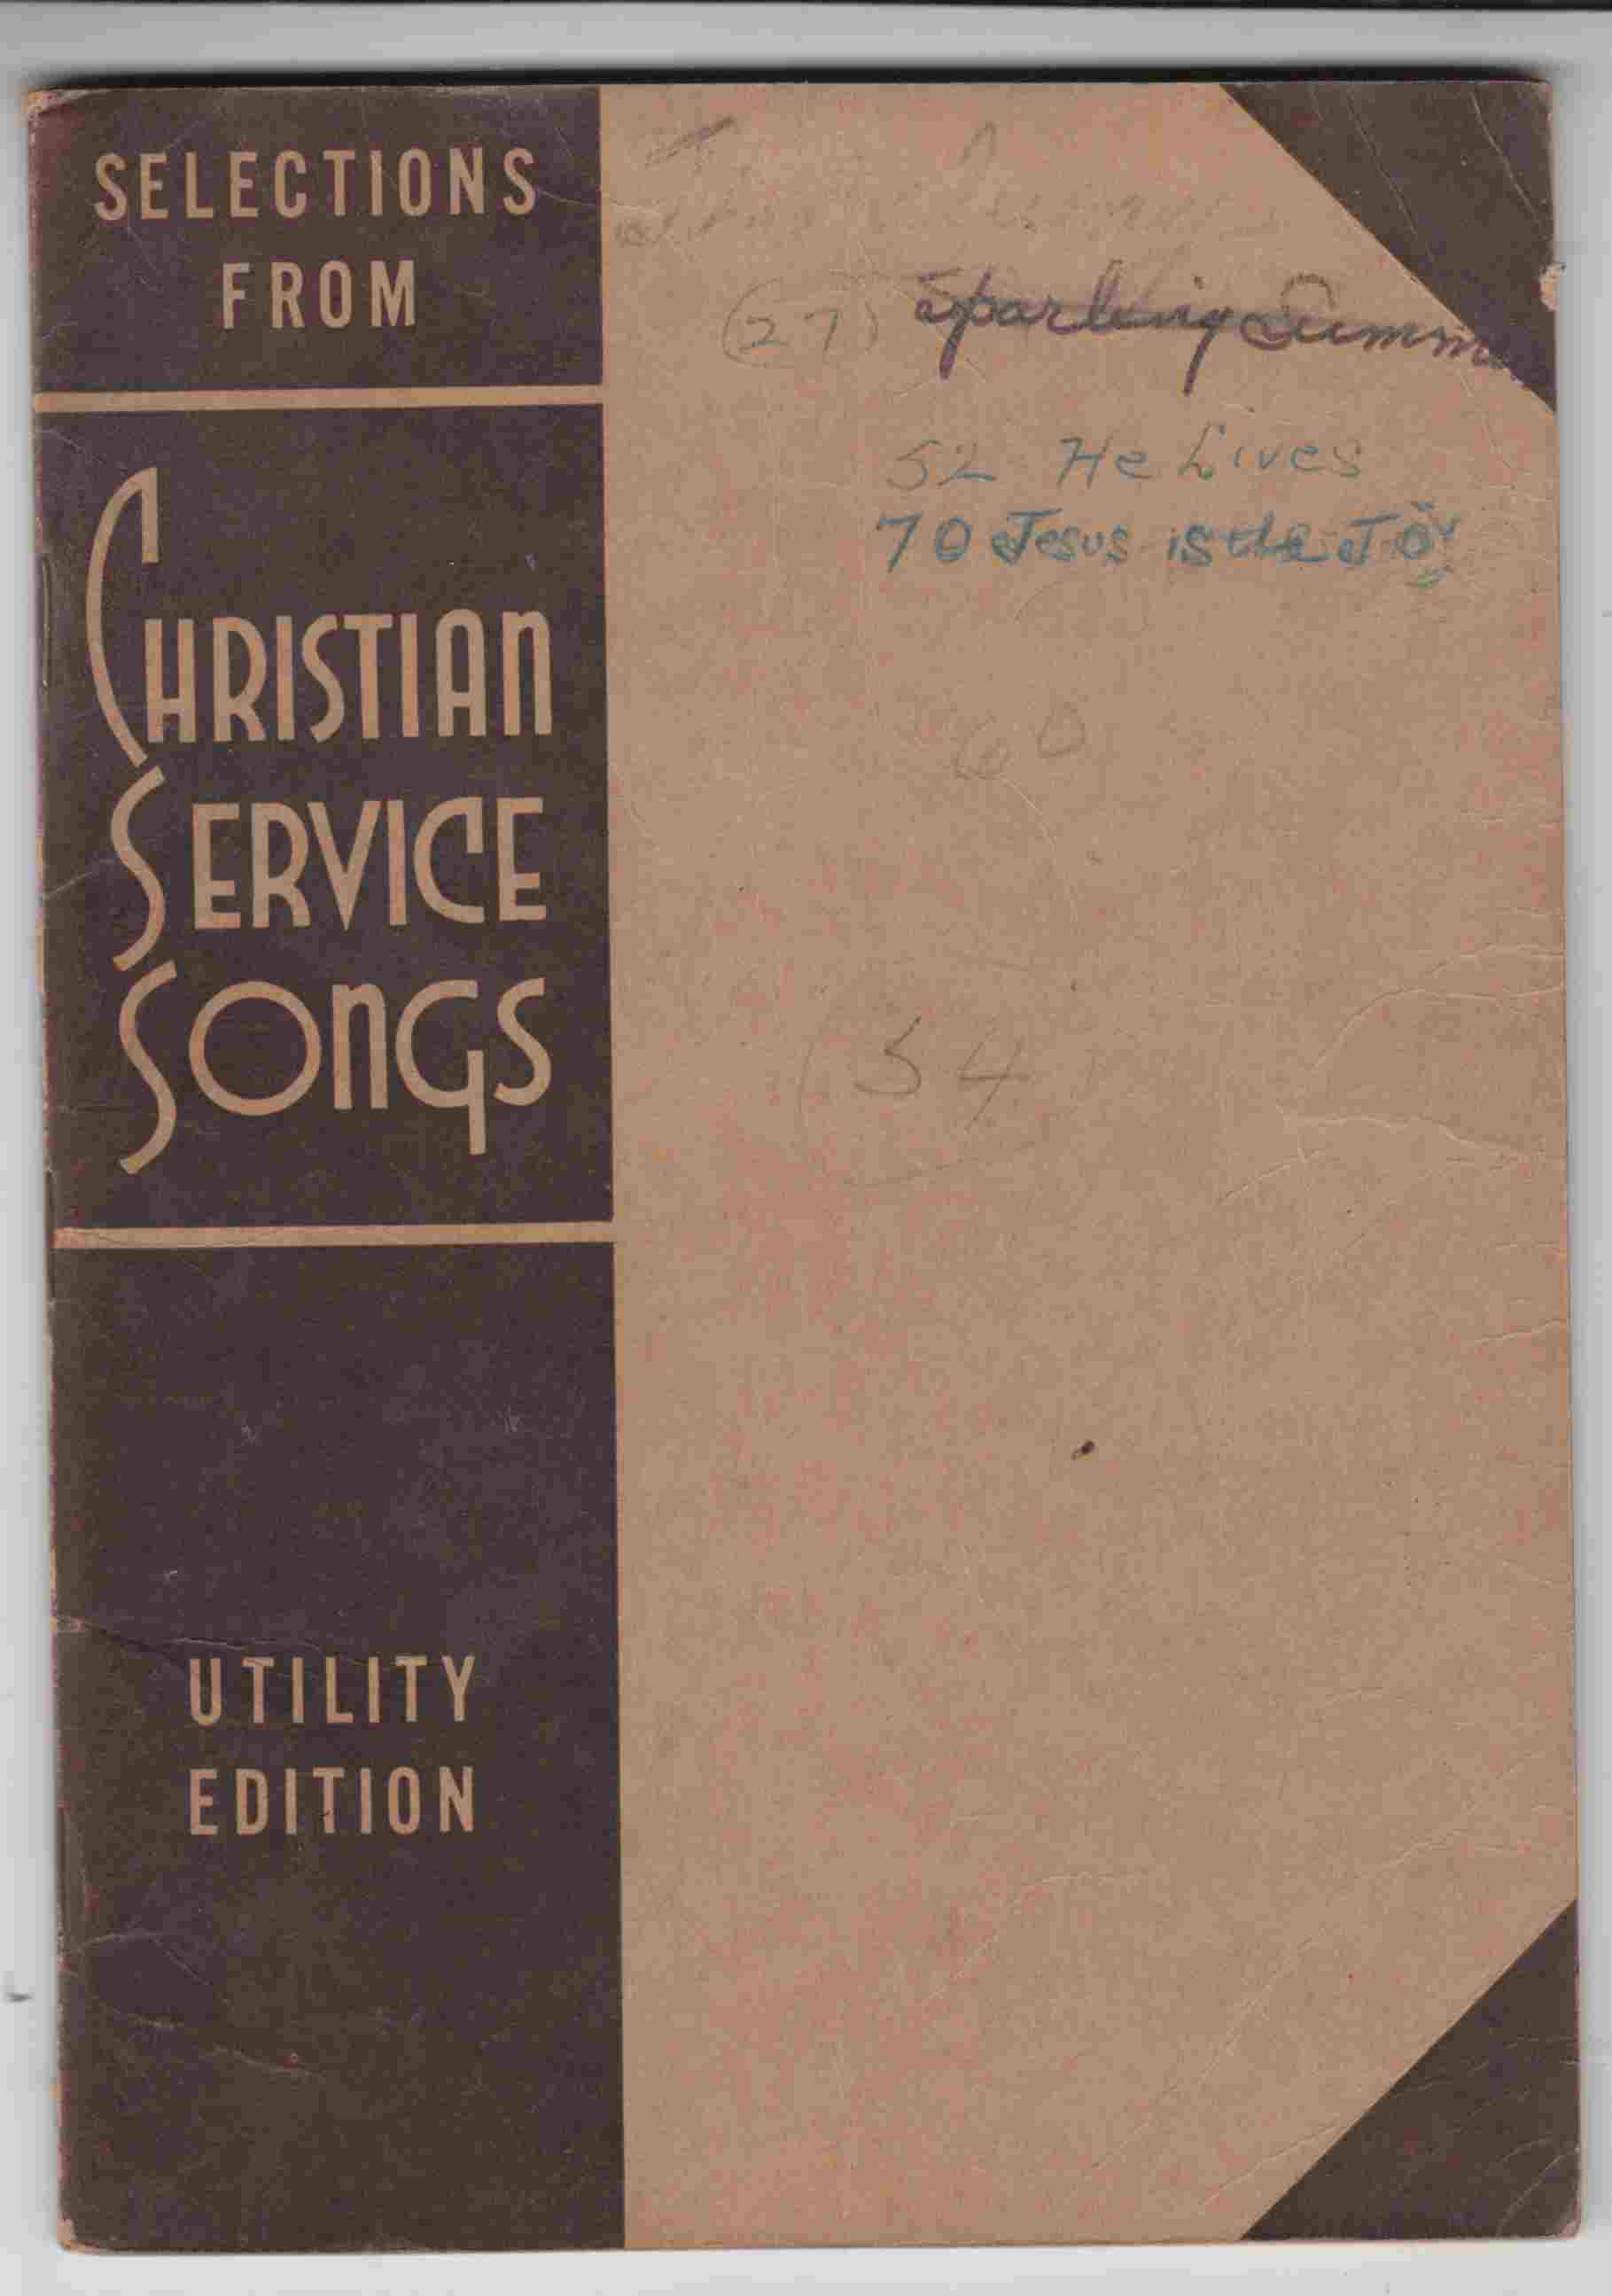 Image for Selections from Christian Service Songs - Utility Edition